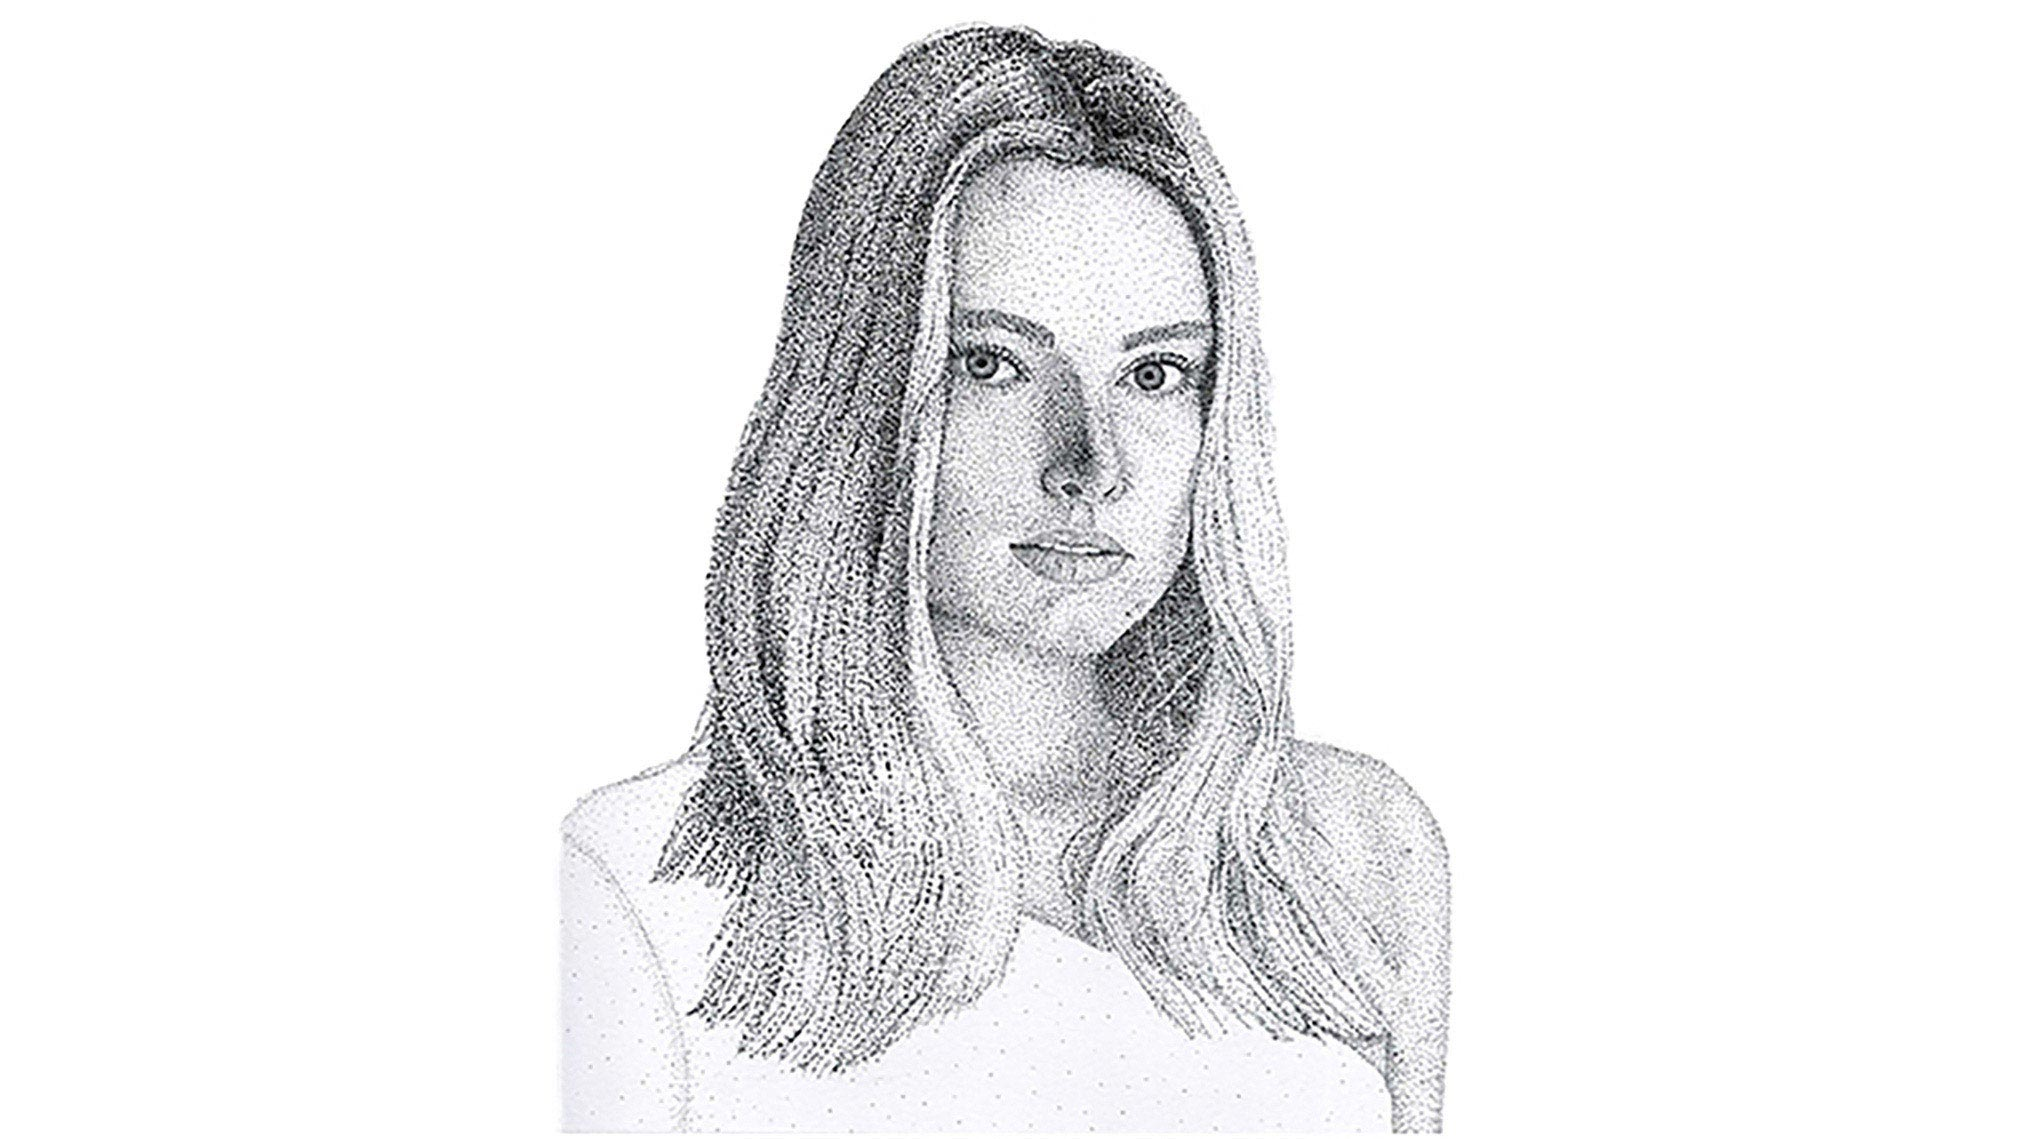 Stipple portrait done in pen of Margot Robbie. Countless hours were spent applying dot after dot to get the final image.